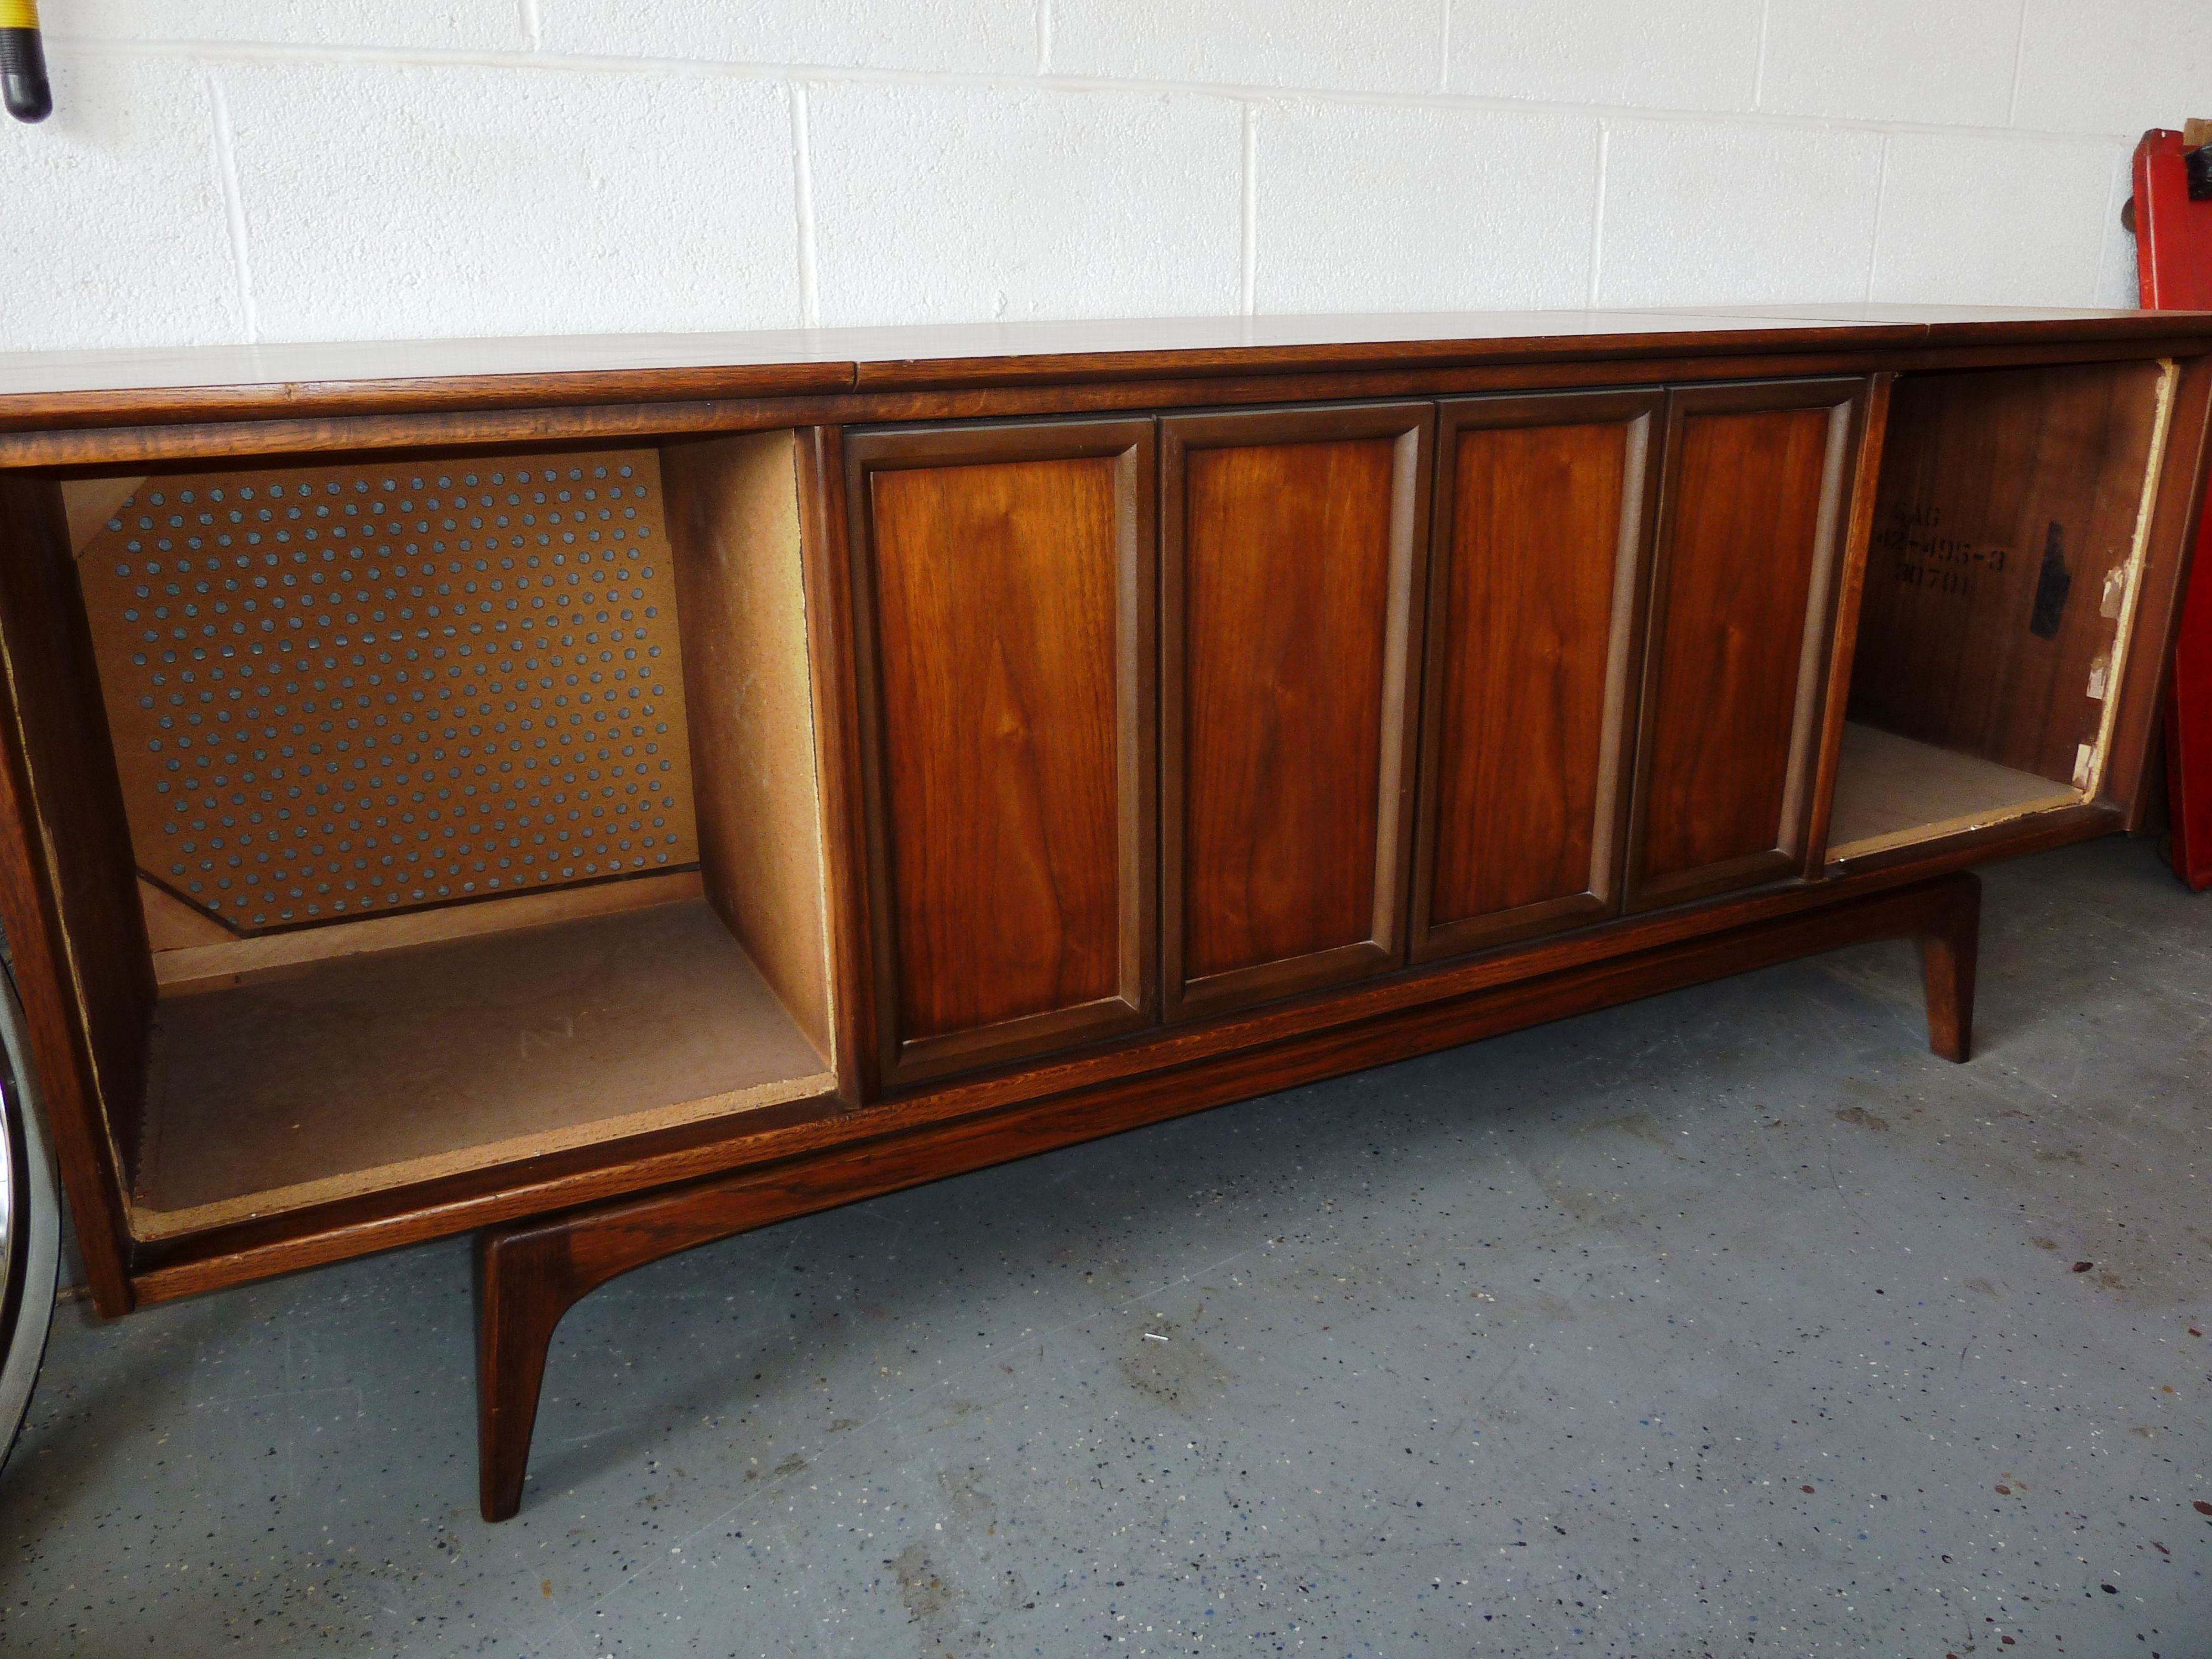 This Console Stereo By Sears Is In The Process Of Being Converted